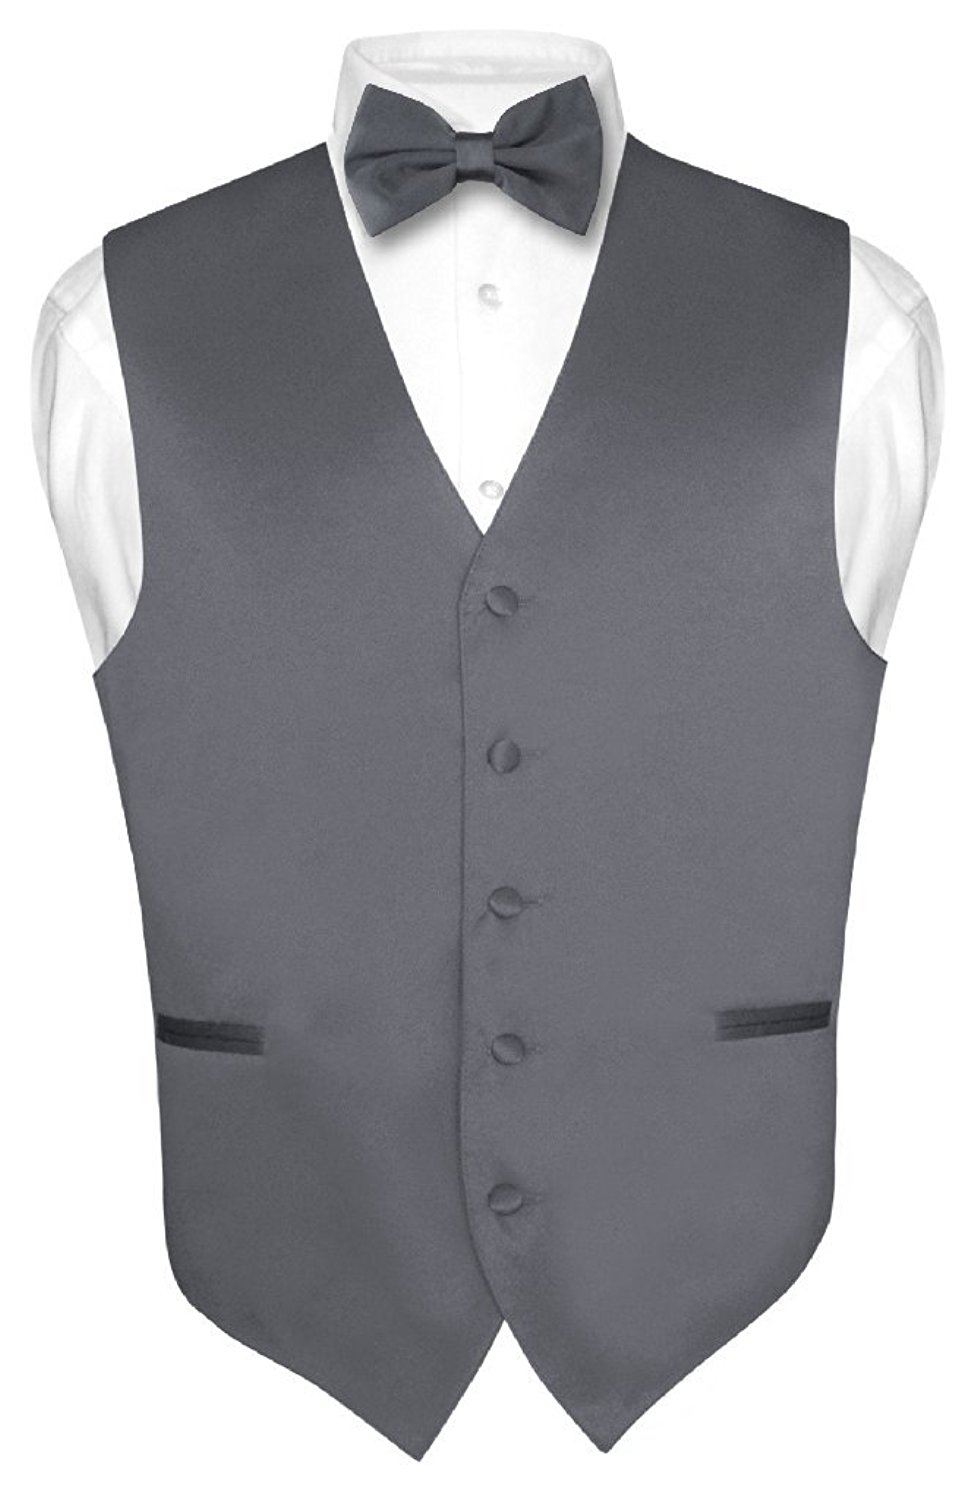 c1ed0499b483 Get Quotations · Men's Dress Vest & BowTie Solid CHARCOAL GREY Color Bow Tie  Set for Suit ...